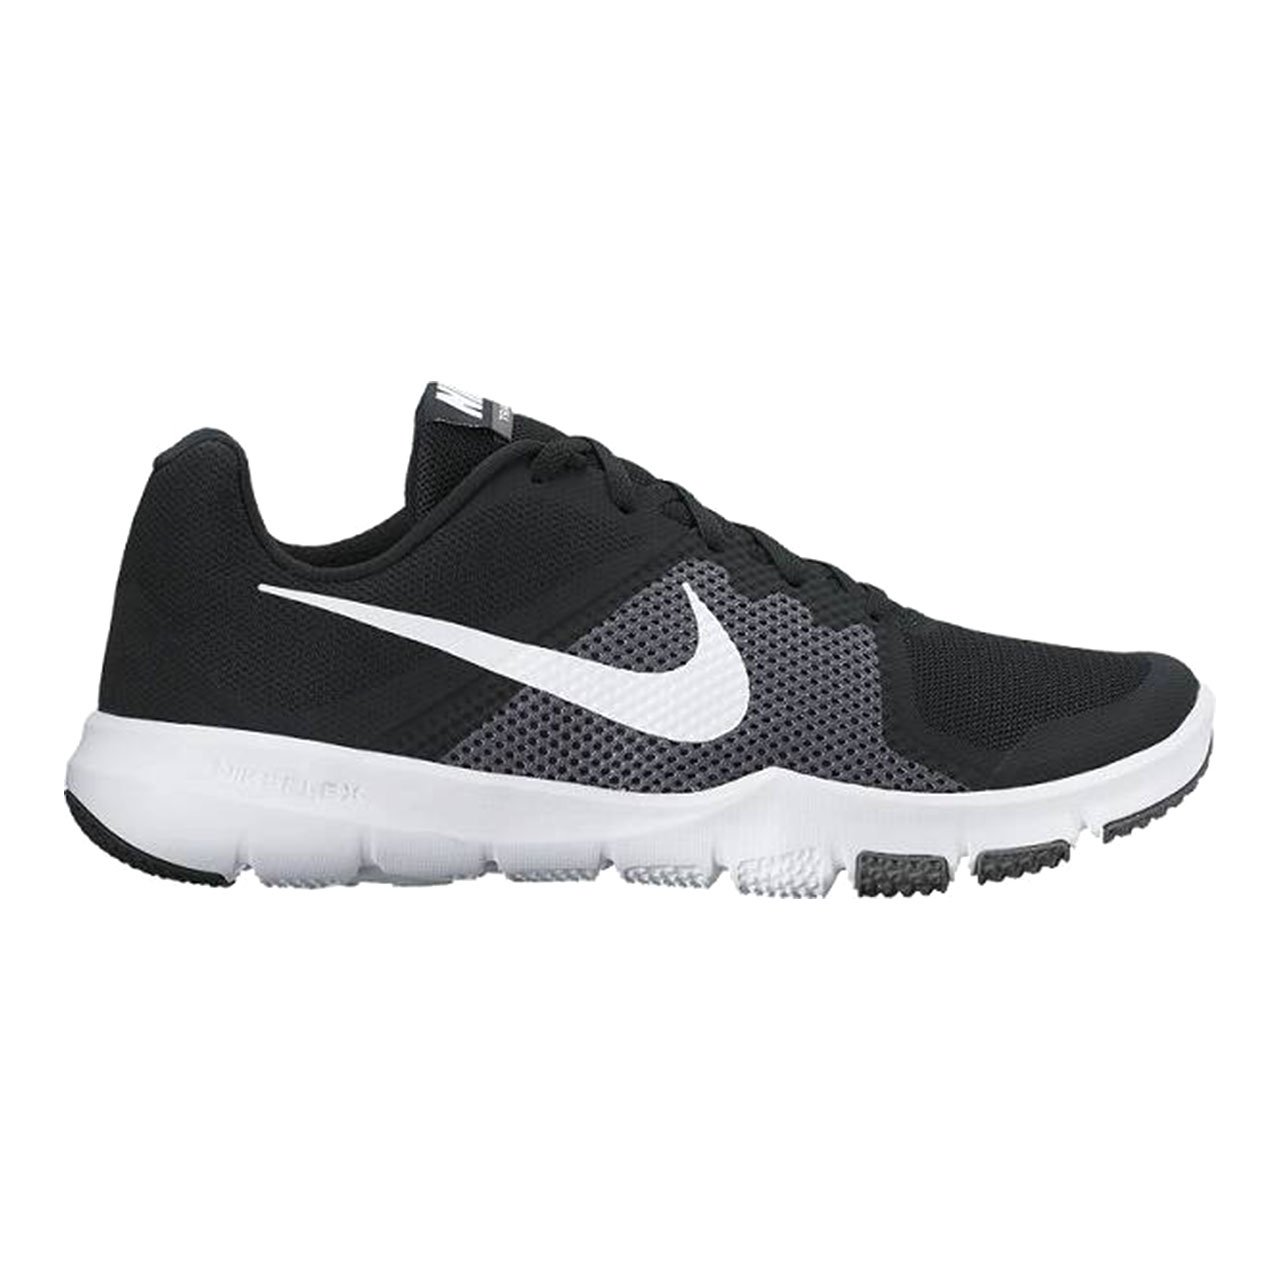 NIKE Men's Flex Control Cross Trainer Shoes B00279C1PY 14 D(M) US|Black/White/Gray-m